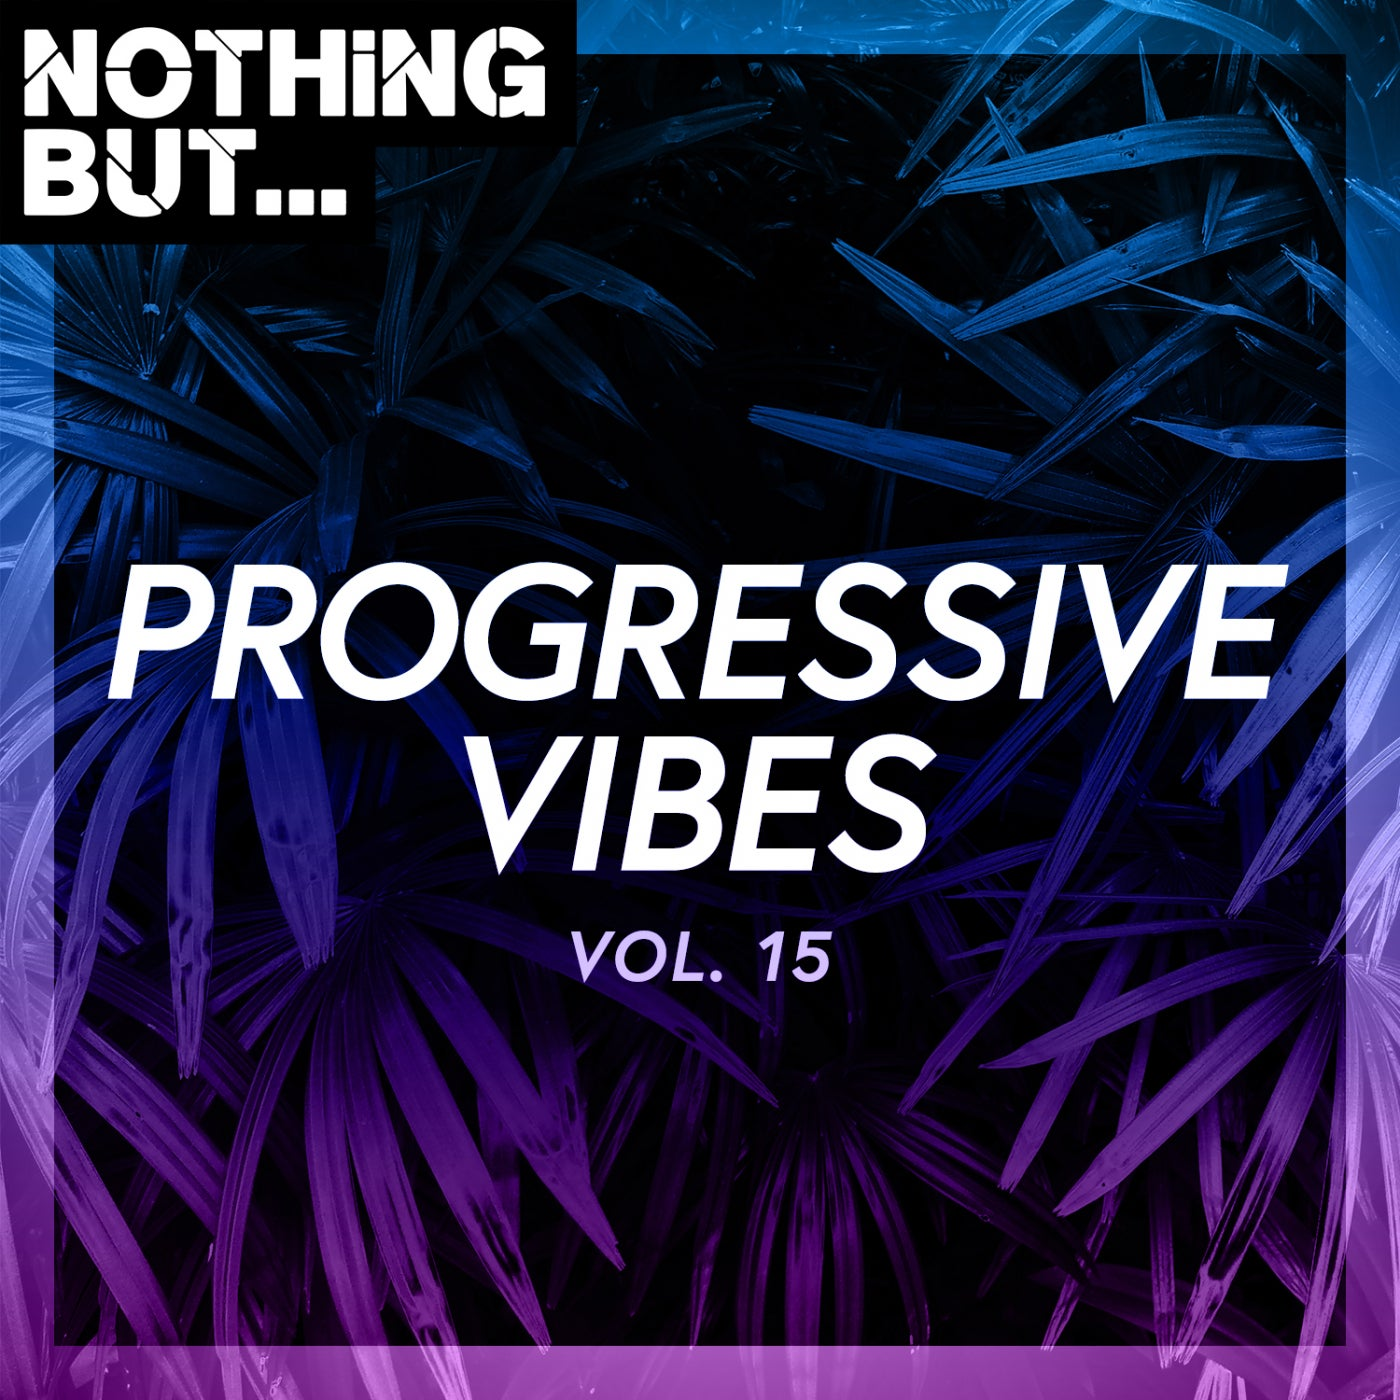 Various Performers - Nothing But... Progressive Vibes Vol. 15 (2021)